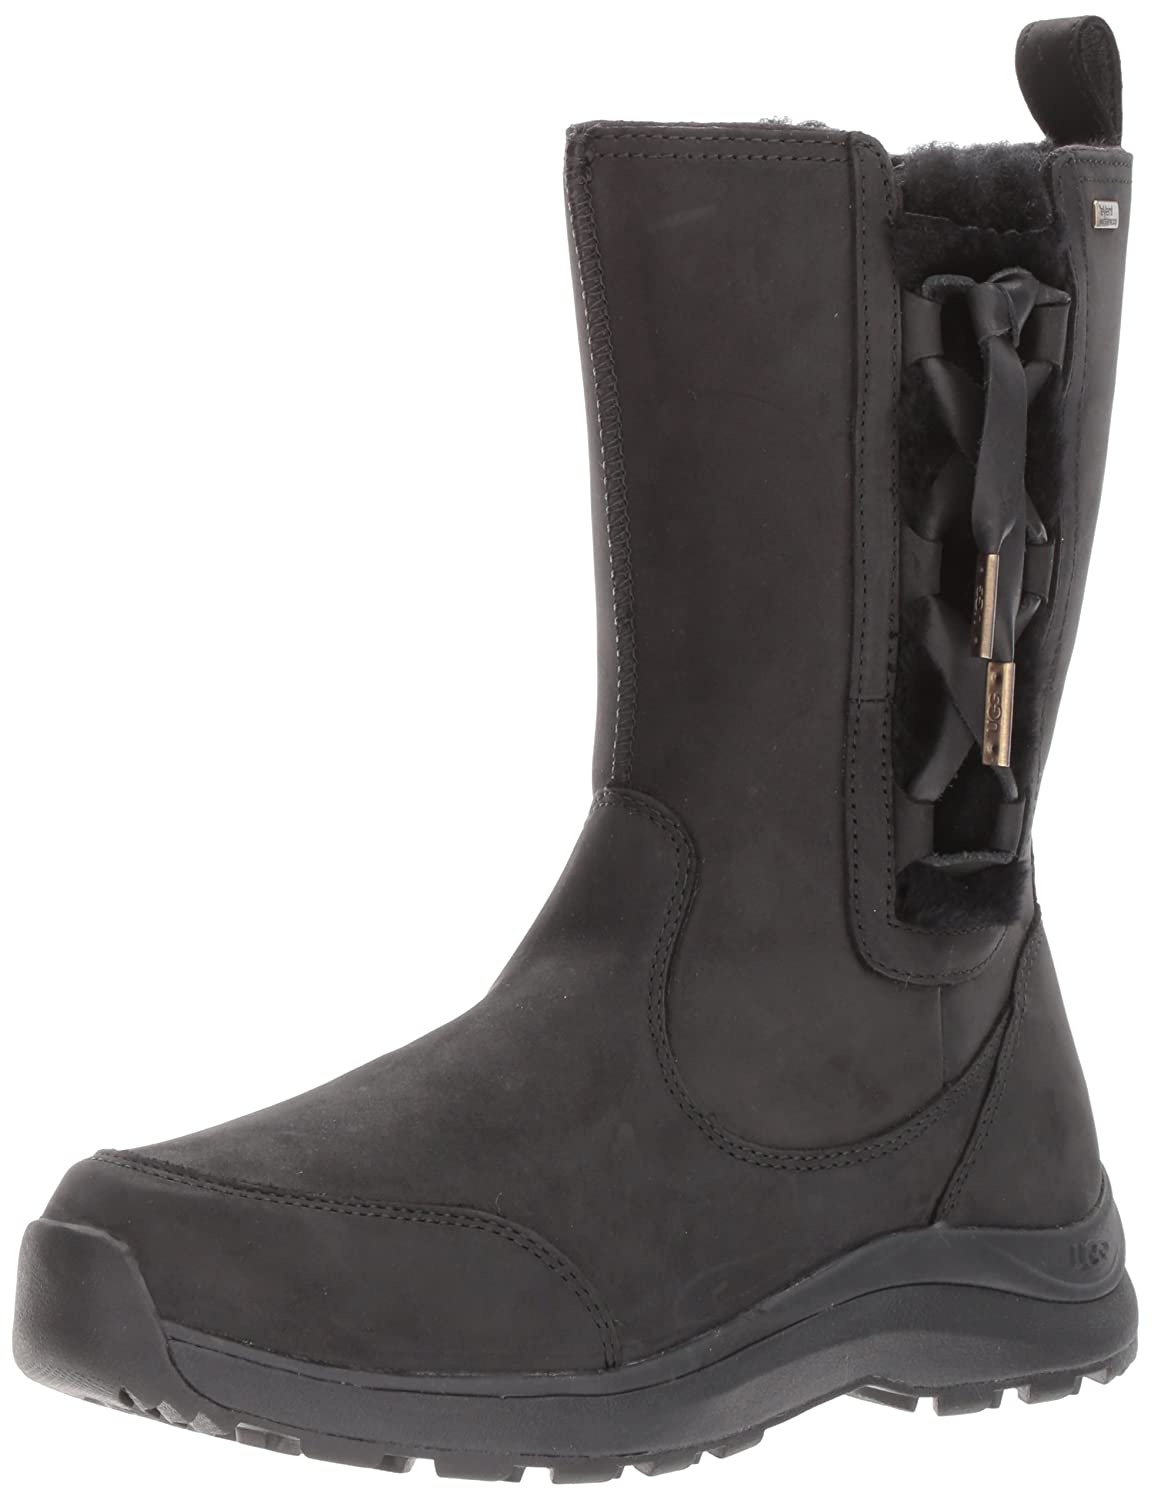 7261e9a15c3 UGG Women's Suvi Snow Boot